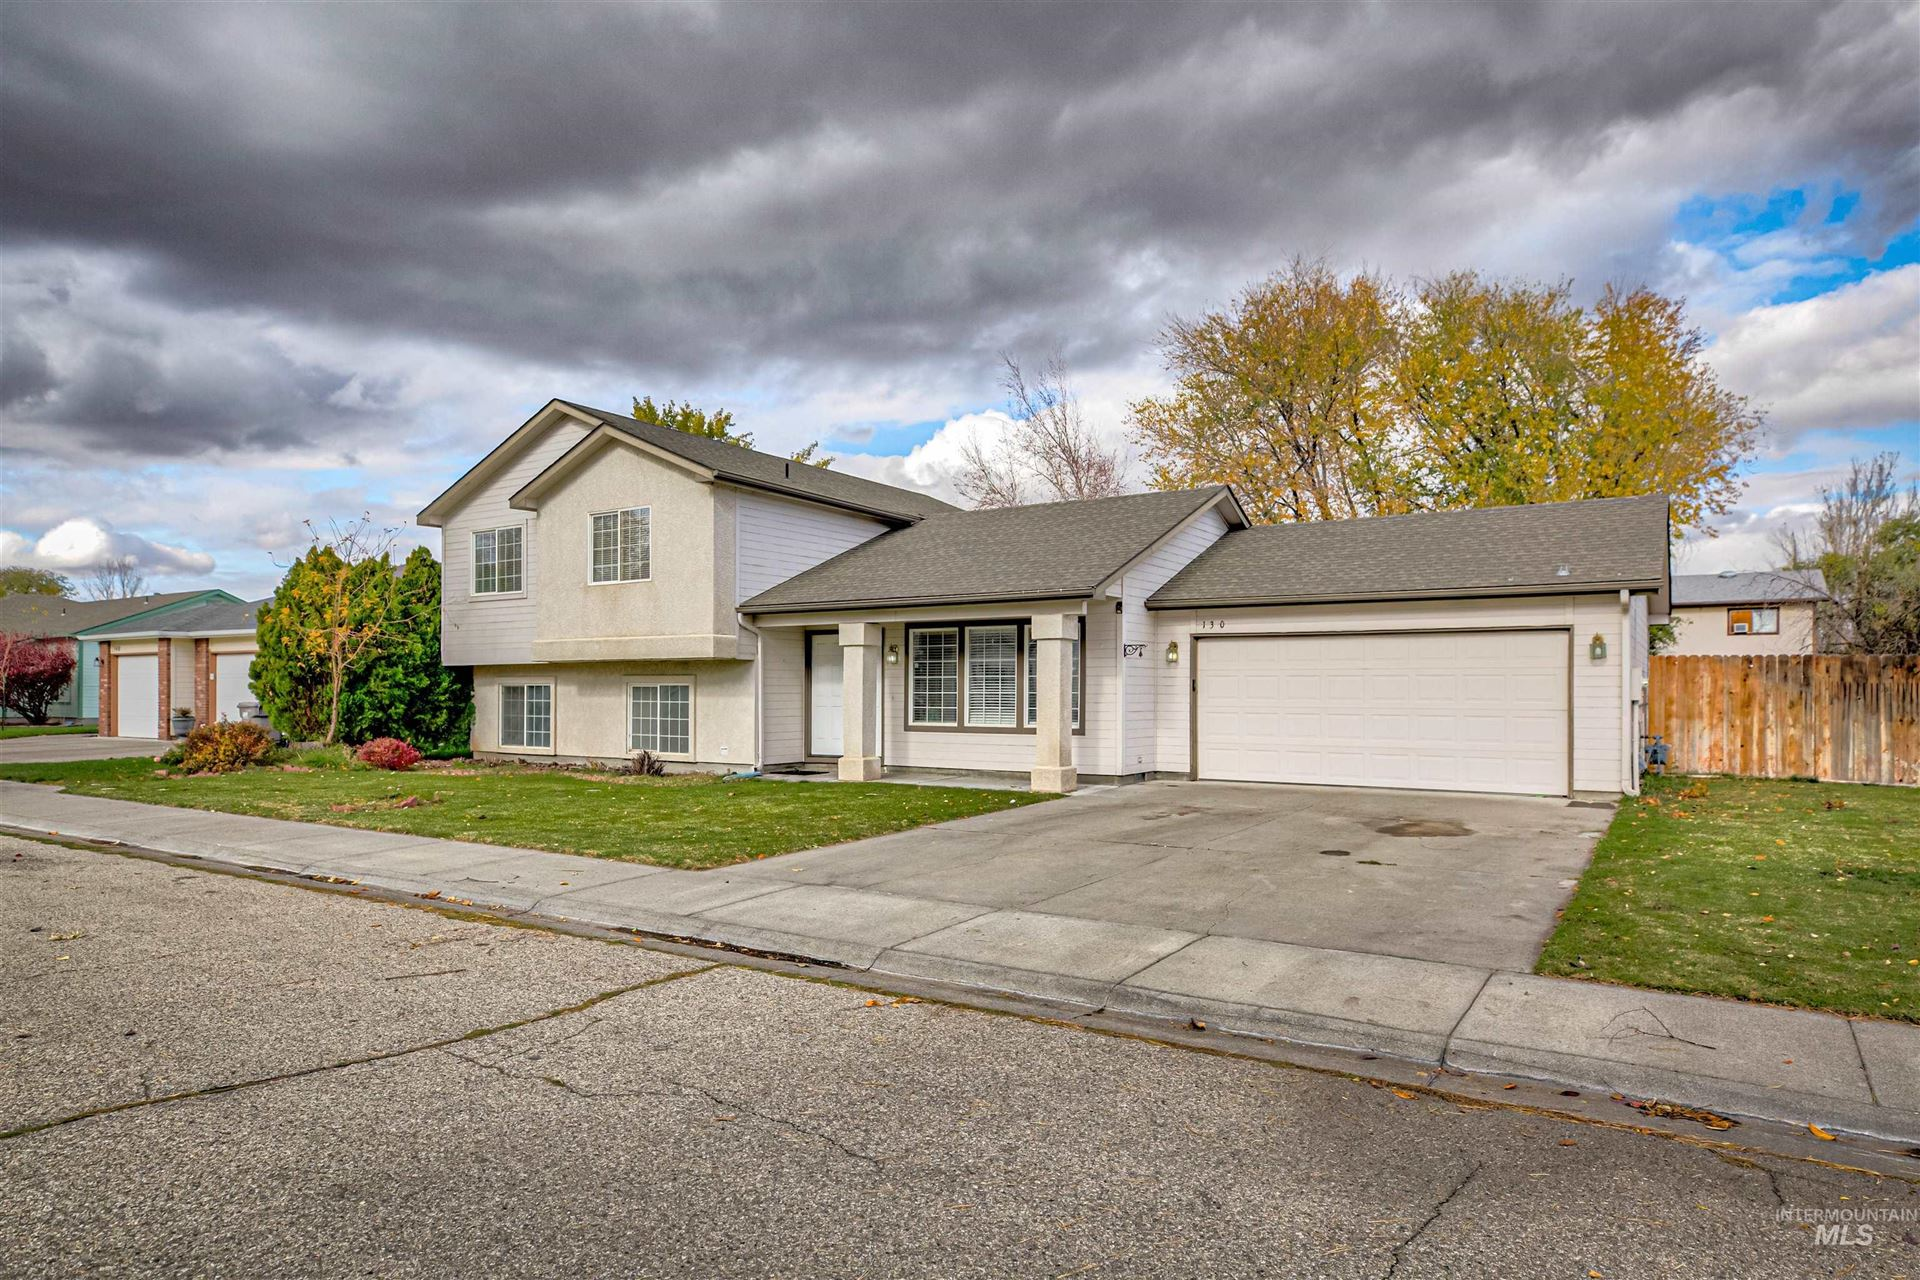 Photo of 130 War Eagle Dr, Mountain Home, ID 83647 (MLS # 98823646)